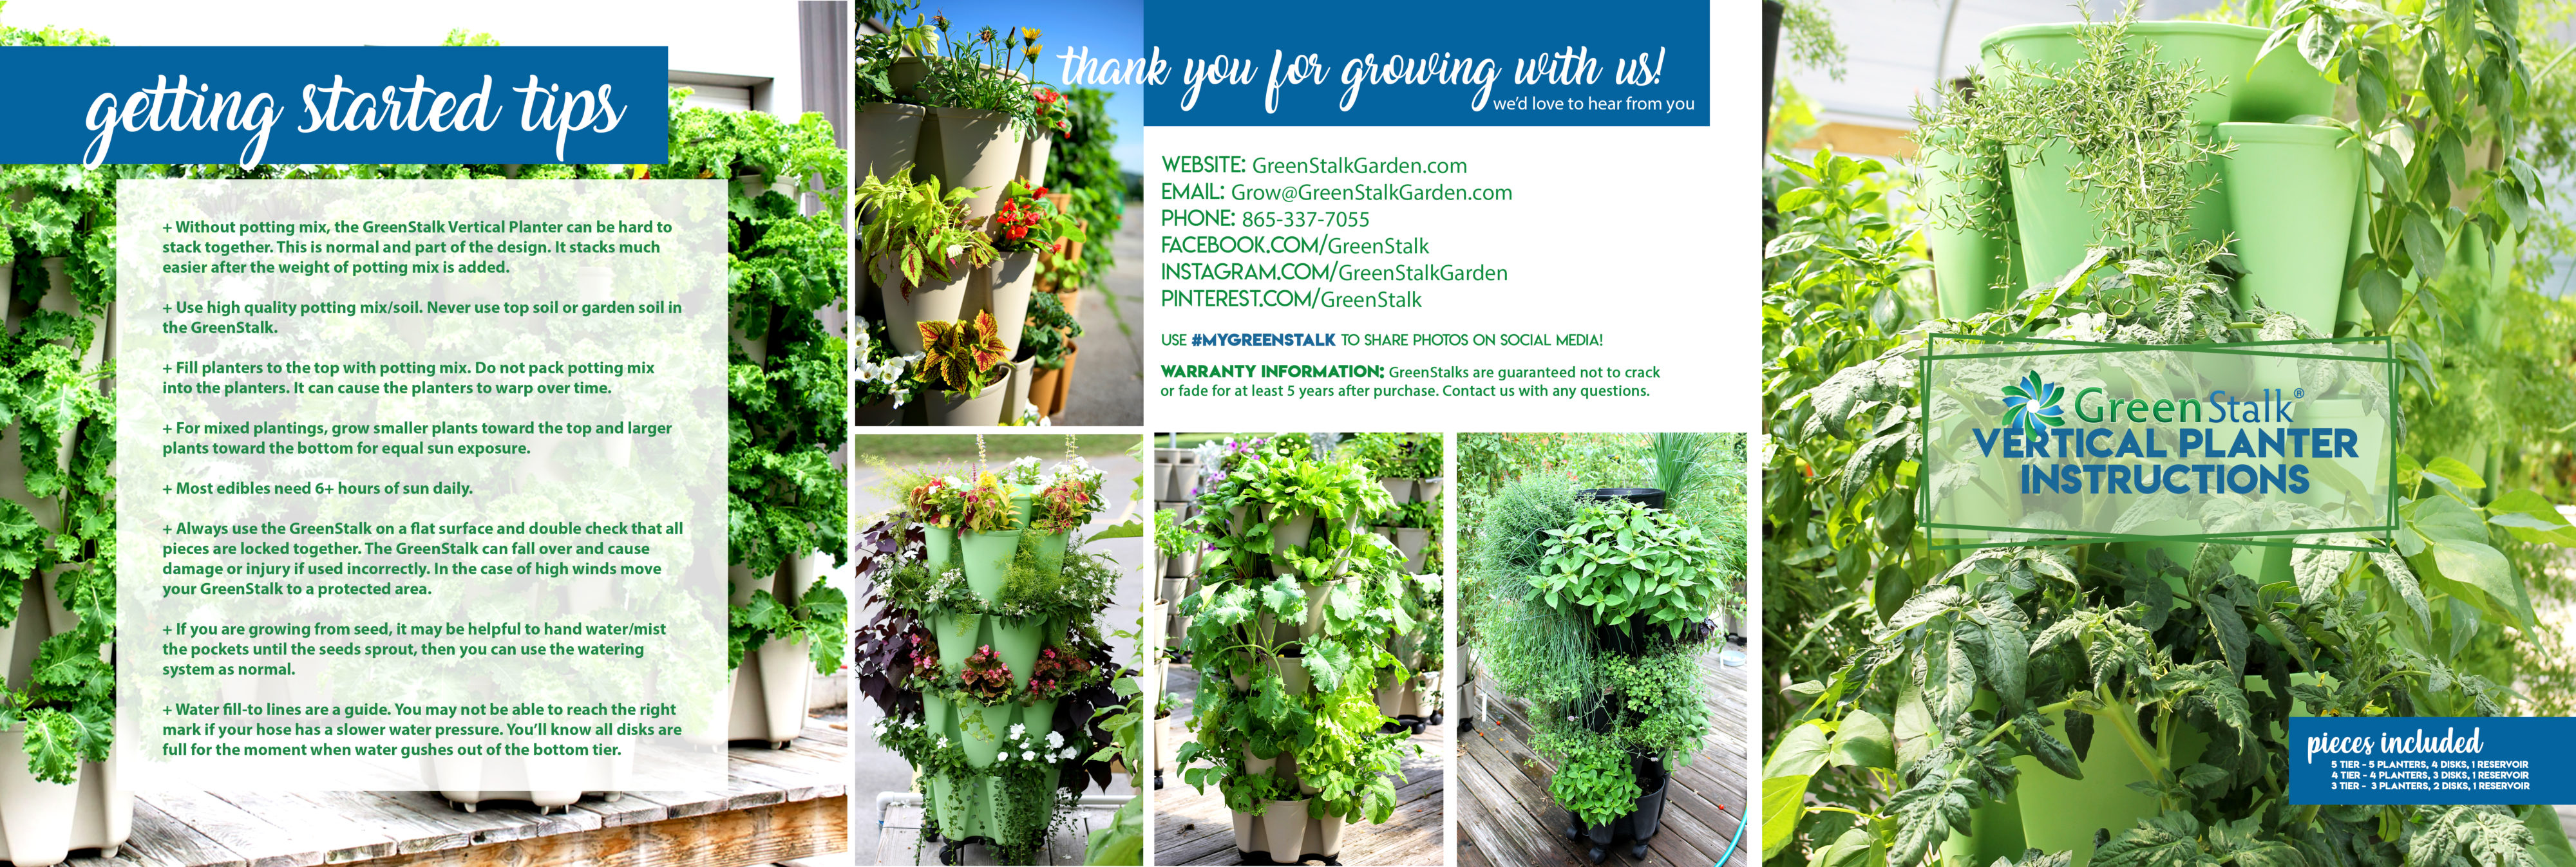 Instructions | GreenStalk Vertical Garden